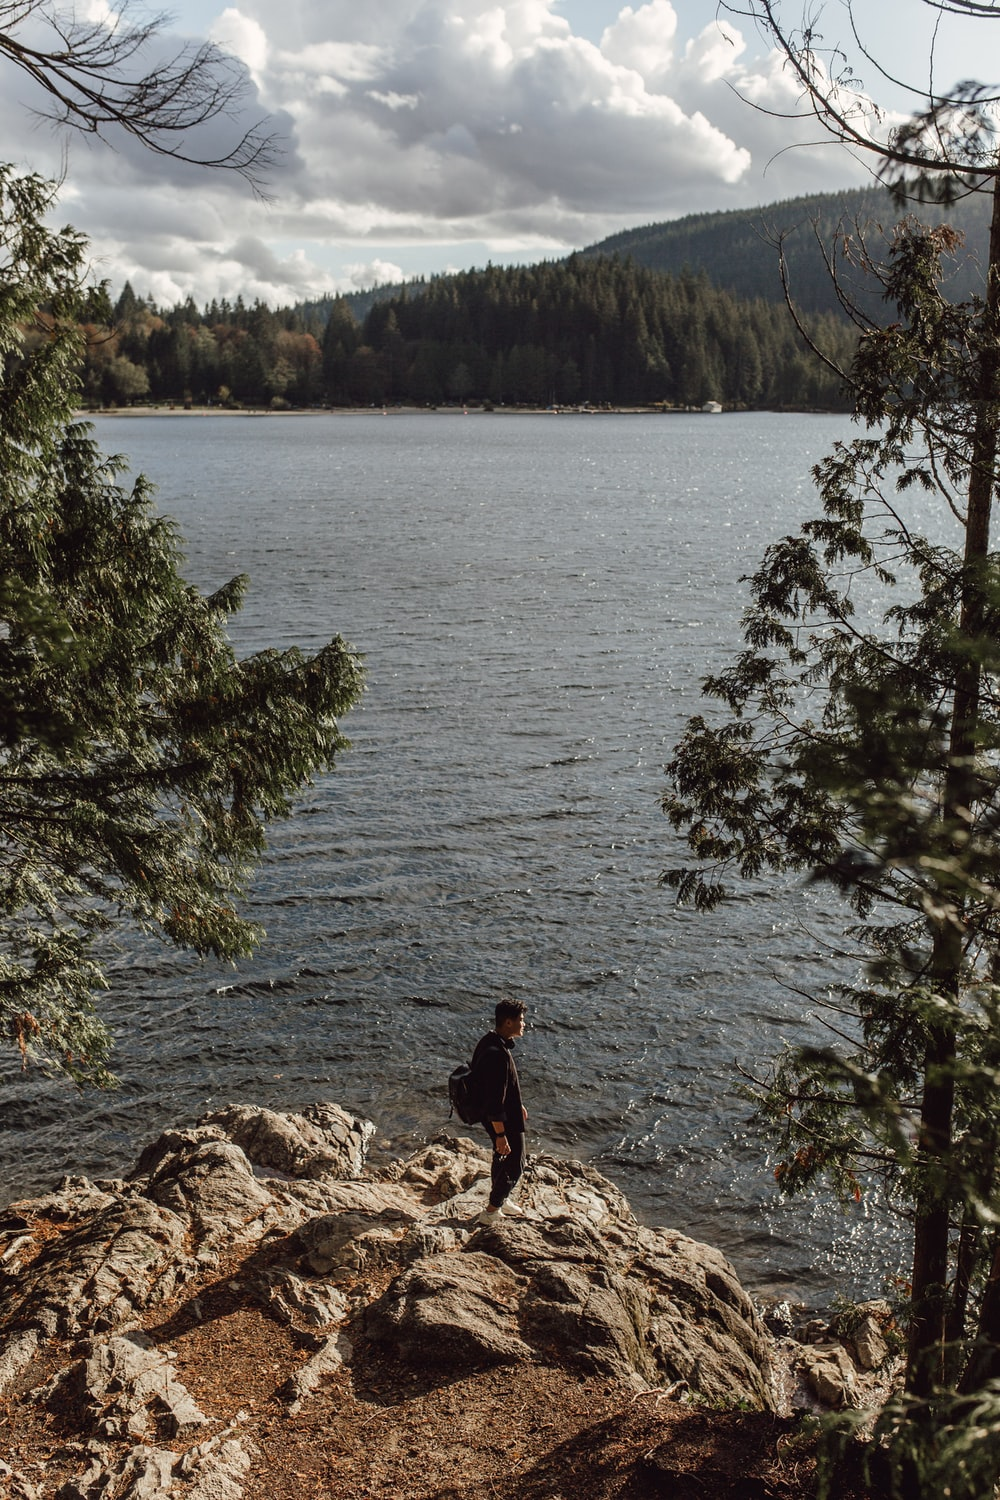 person in black jacket standing on rock near body of water during daytime